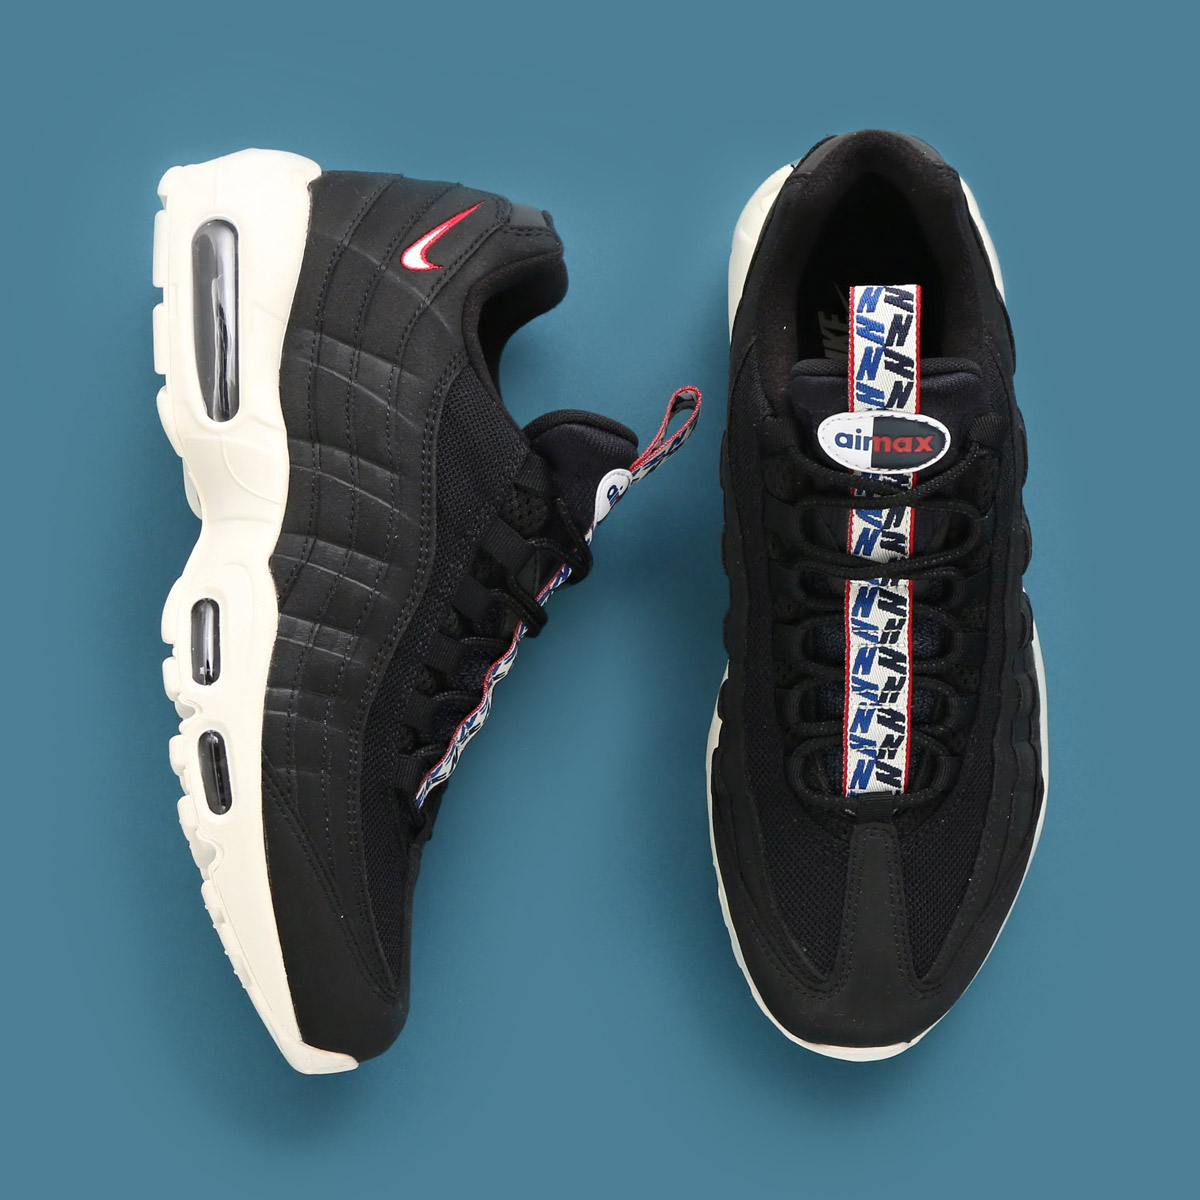 f483921409 Categories. « All Categories · Shoes · Men's Shoes · Sneakers · NIKE AIR  MAX 95 ...